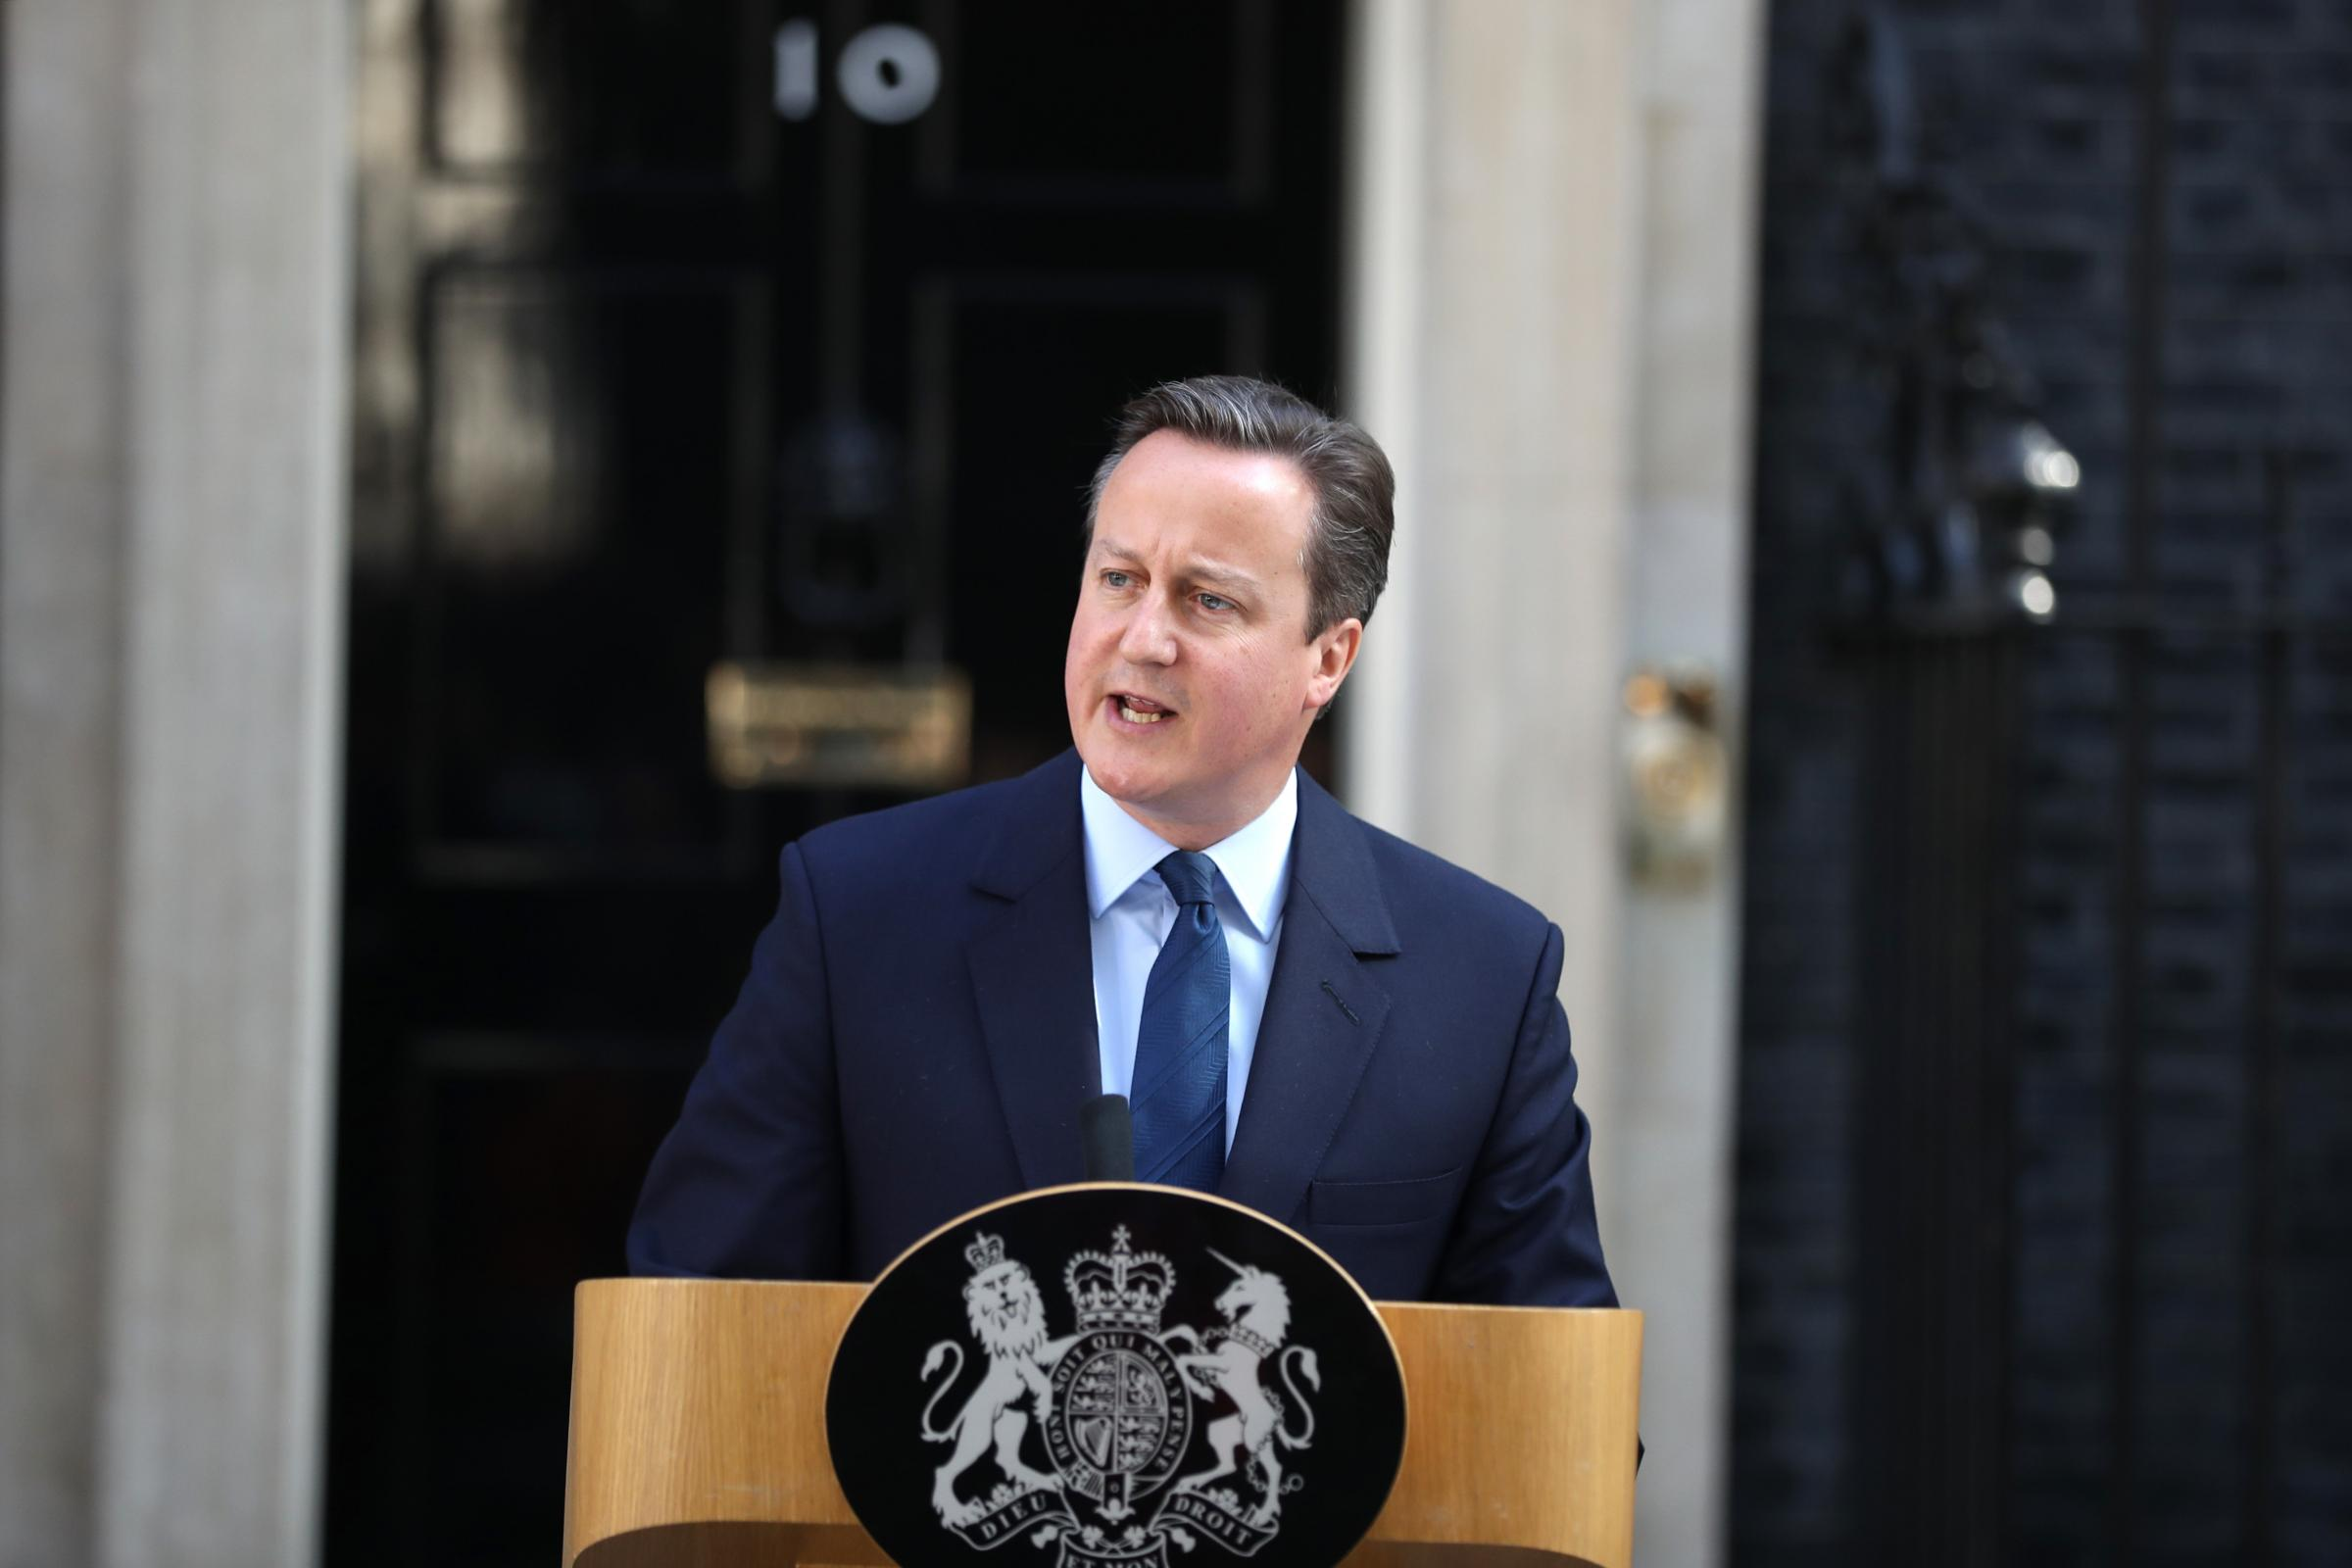 David Cameron resigned following the 2016 Brexit referendum